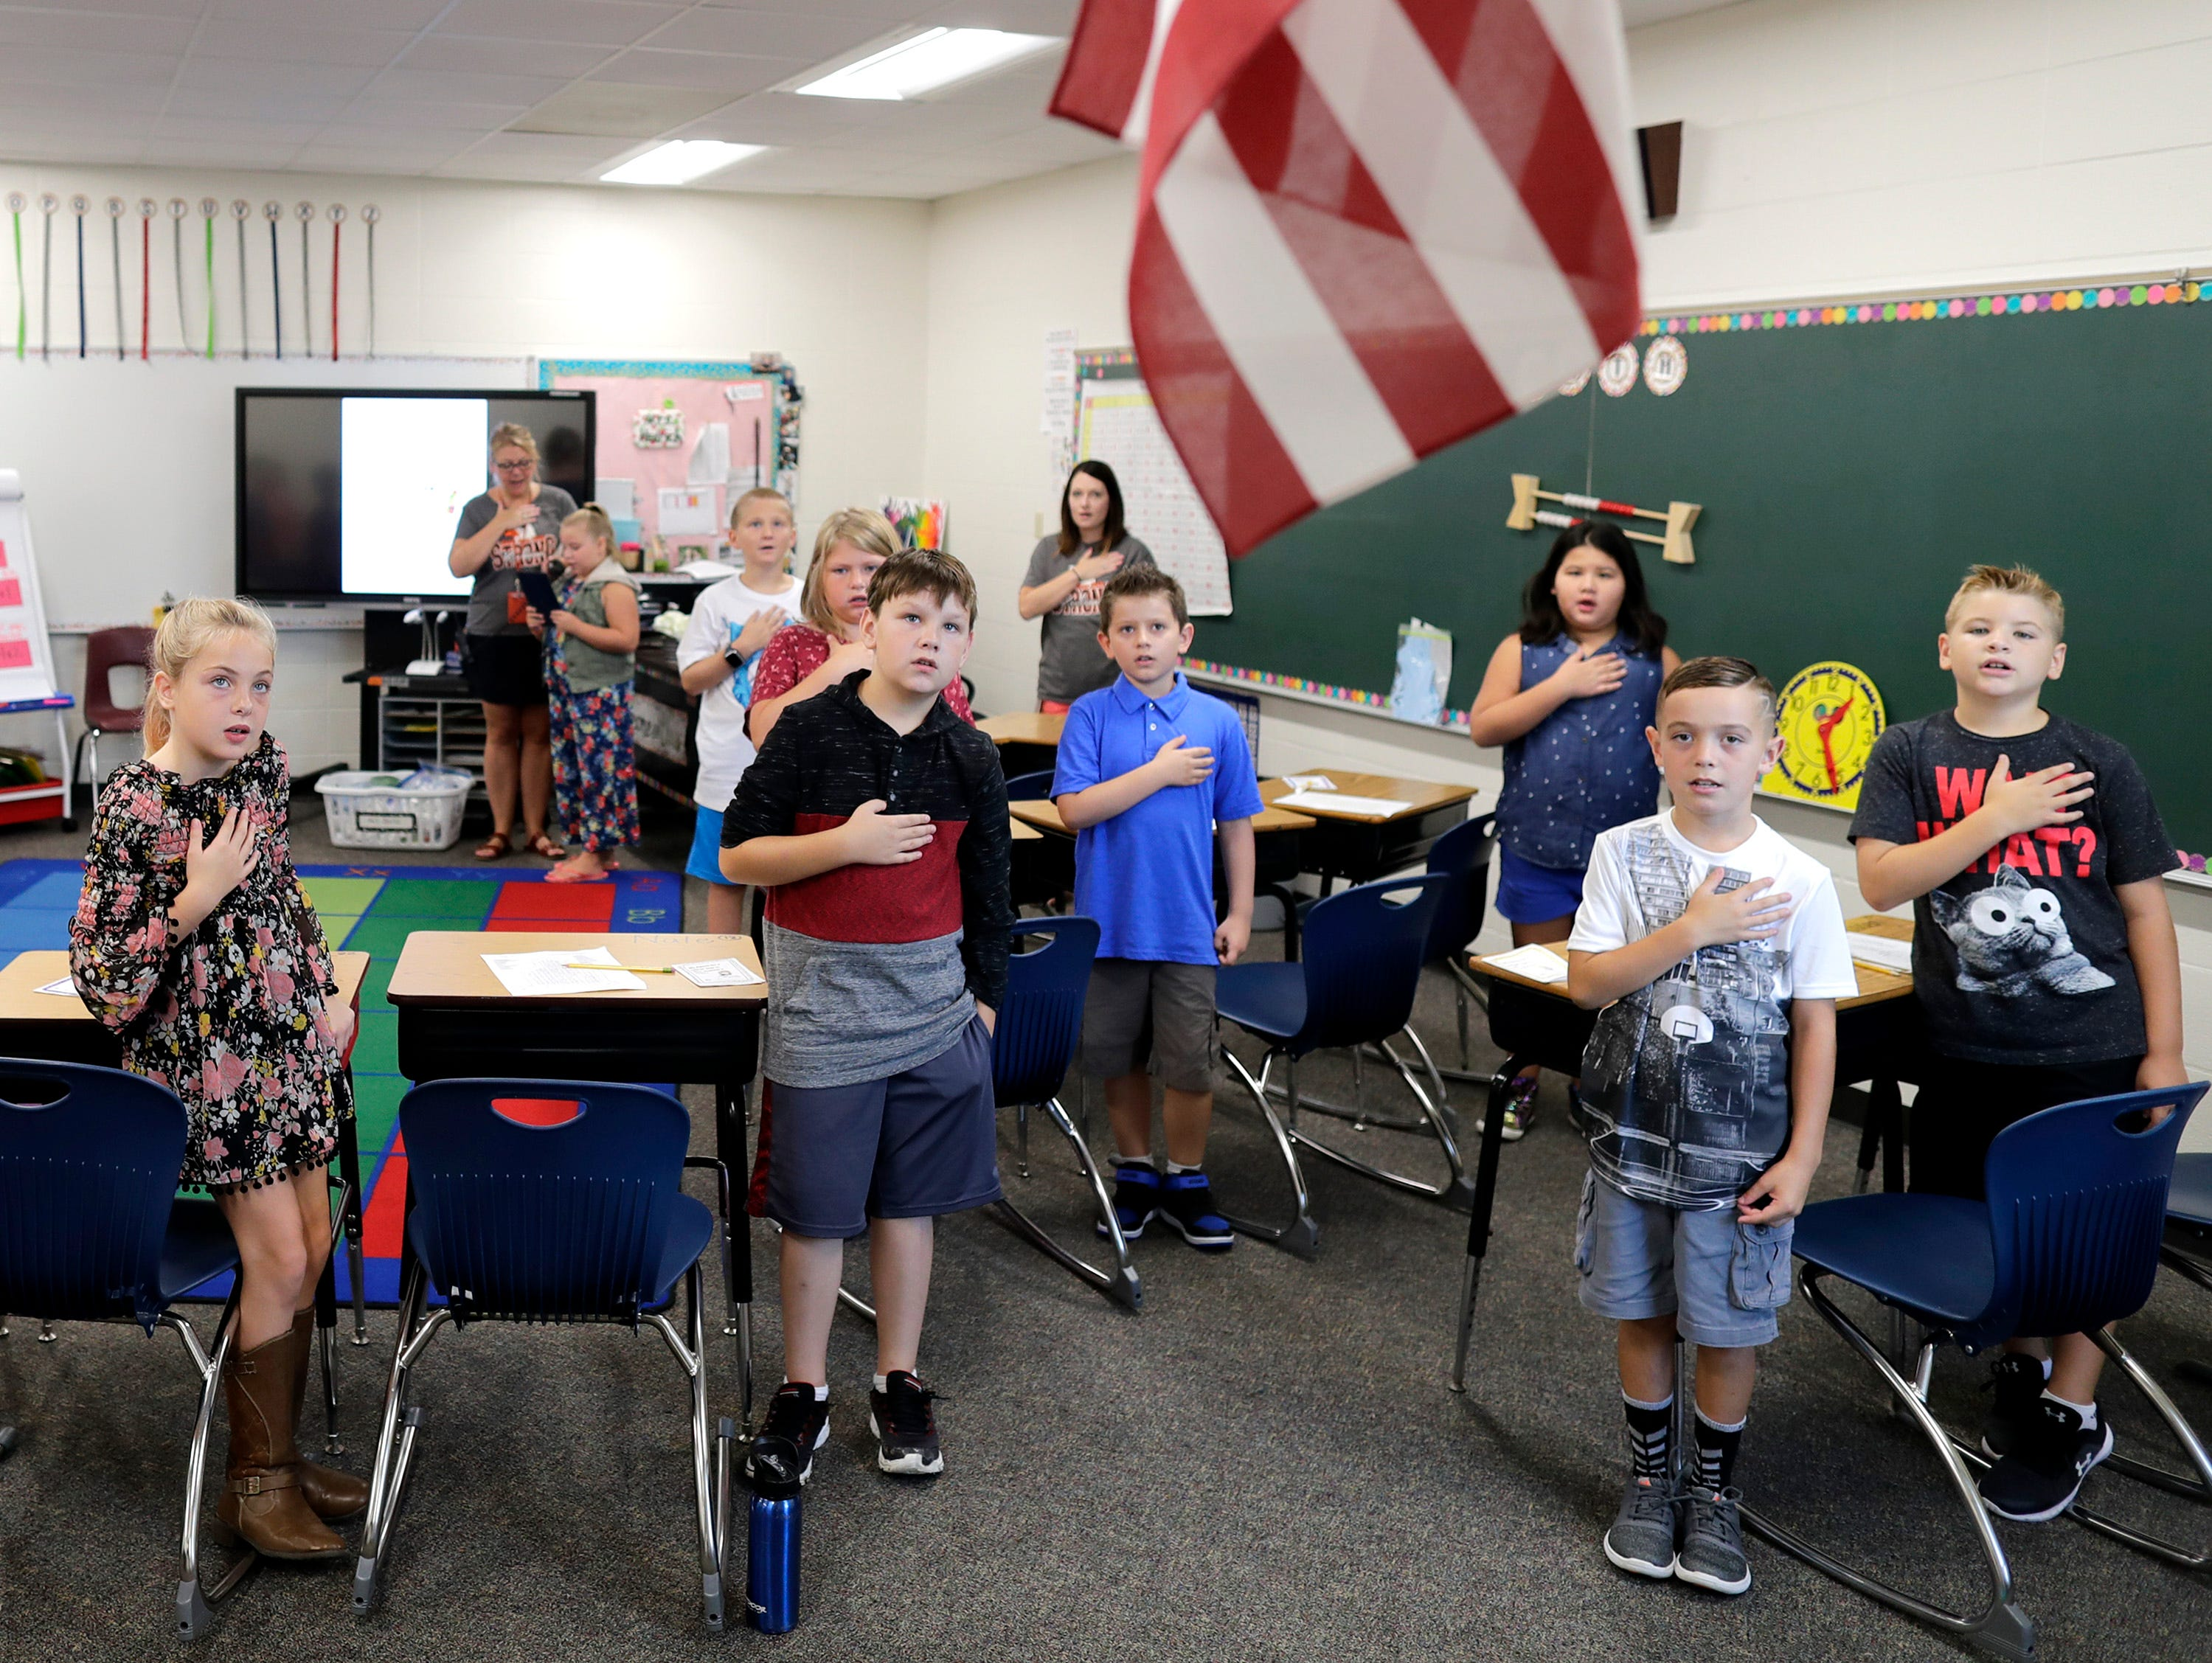 Students say the Pledge of Allegiance of return to class on the first day of school at Victor Haen Elementary on Tuesday, September 4, 2018, in Kaukauna, Wis. 